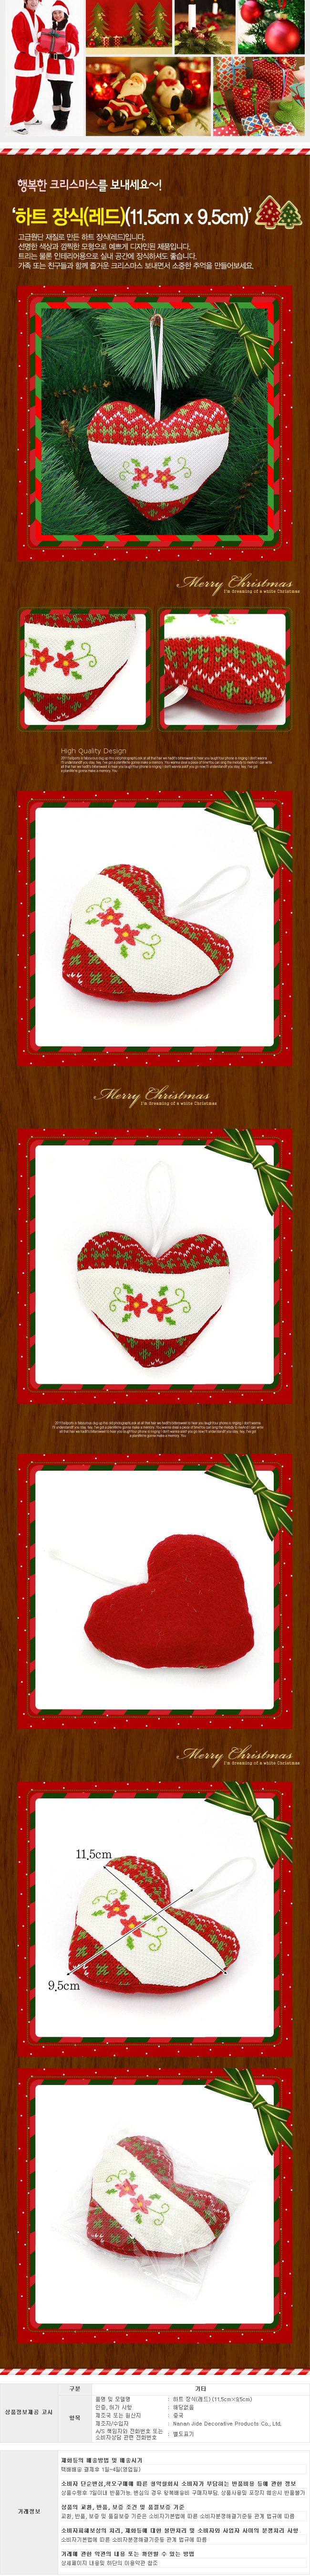 [ WINEQOK ] Christmas Goods / Red velvet decorated with hearts.